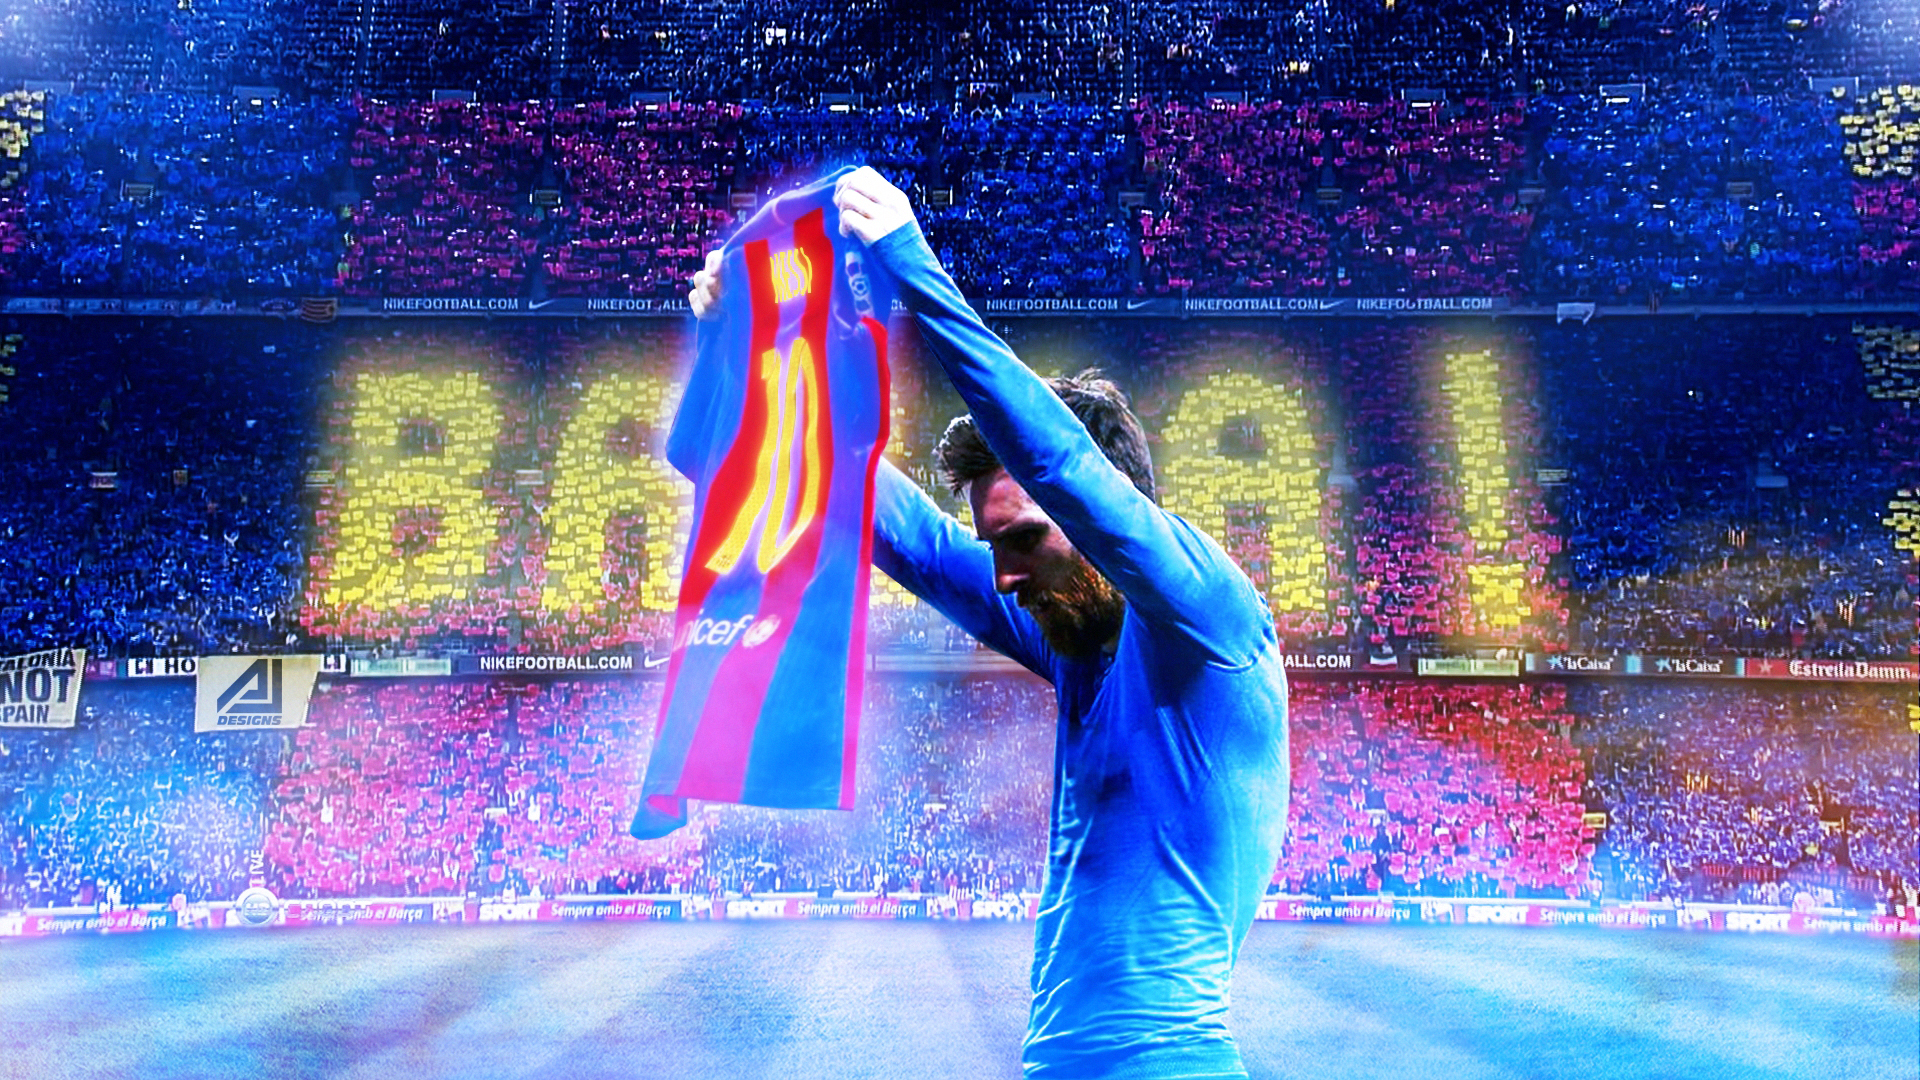 Messi 2020 wallpapers 4 1